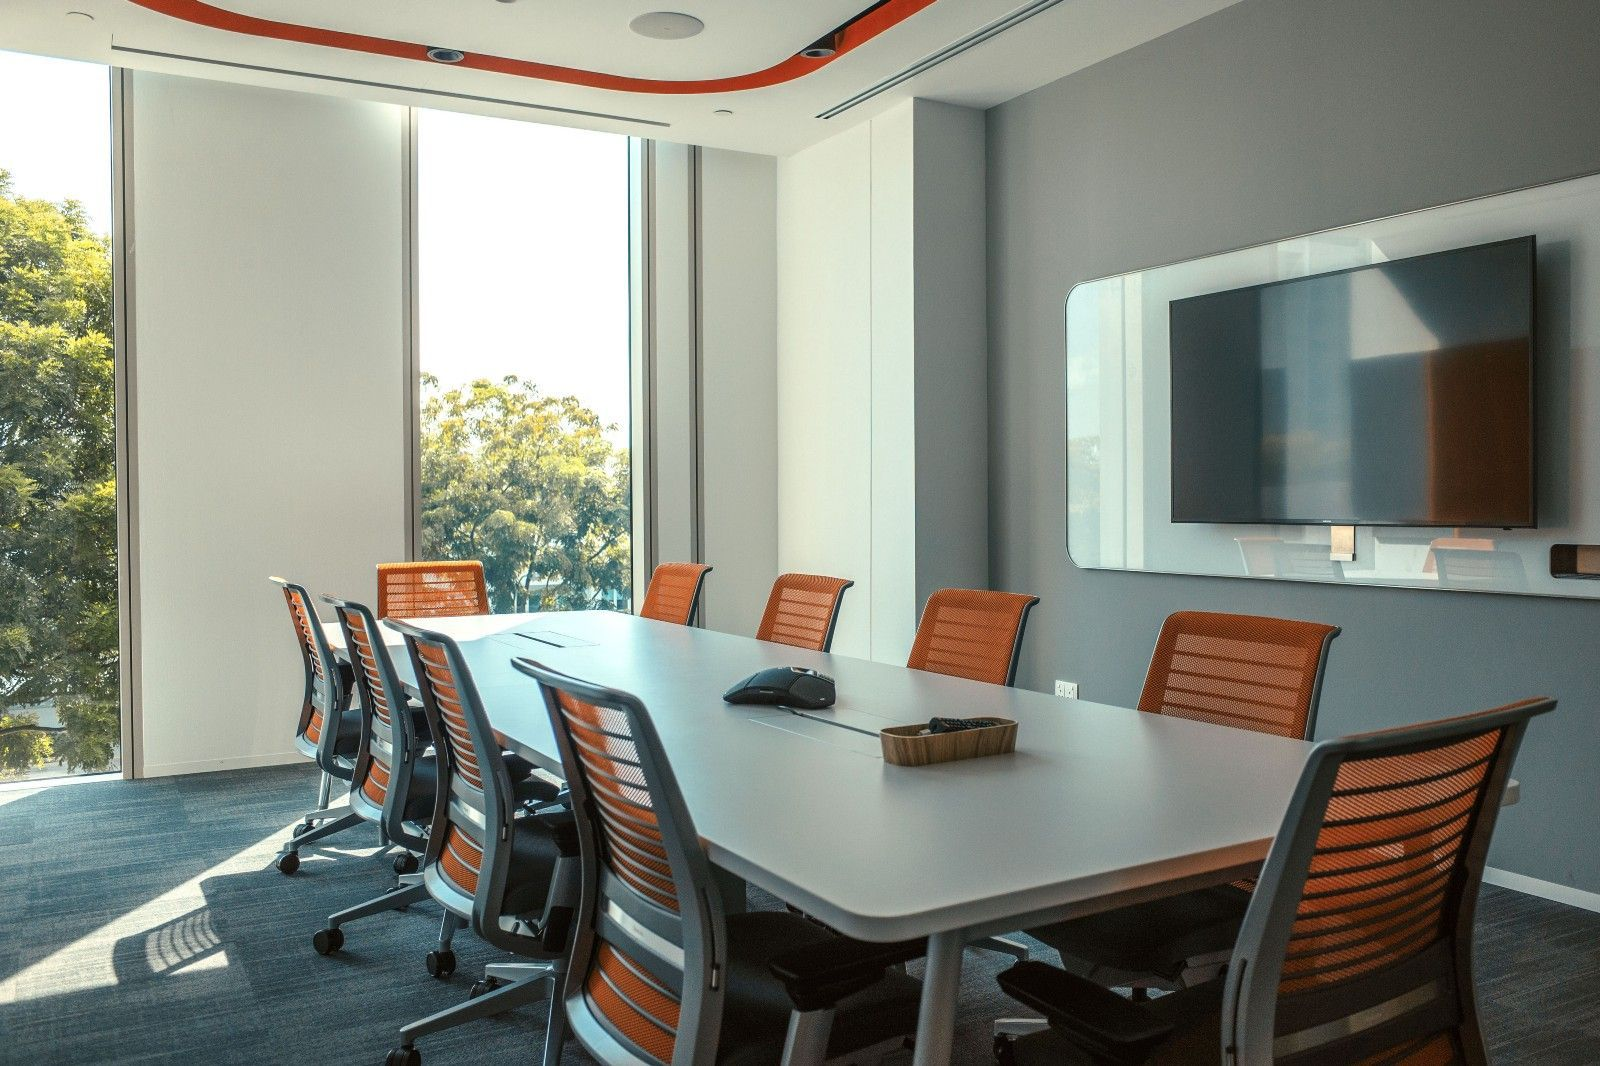 About Shopee office Singapore Shopee Design Medium